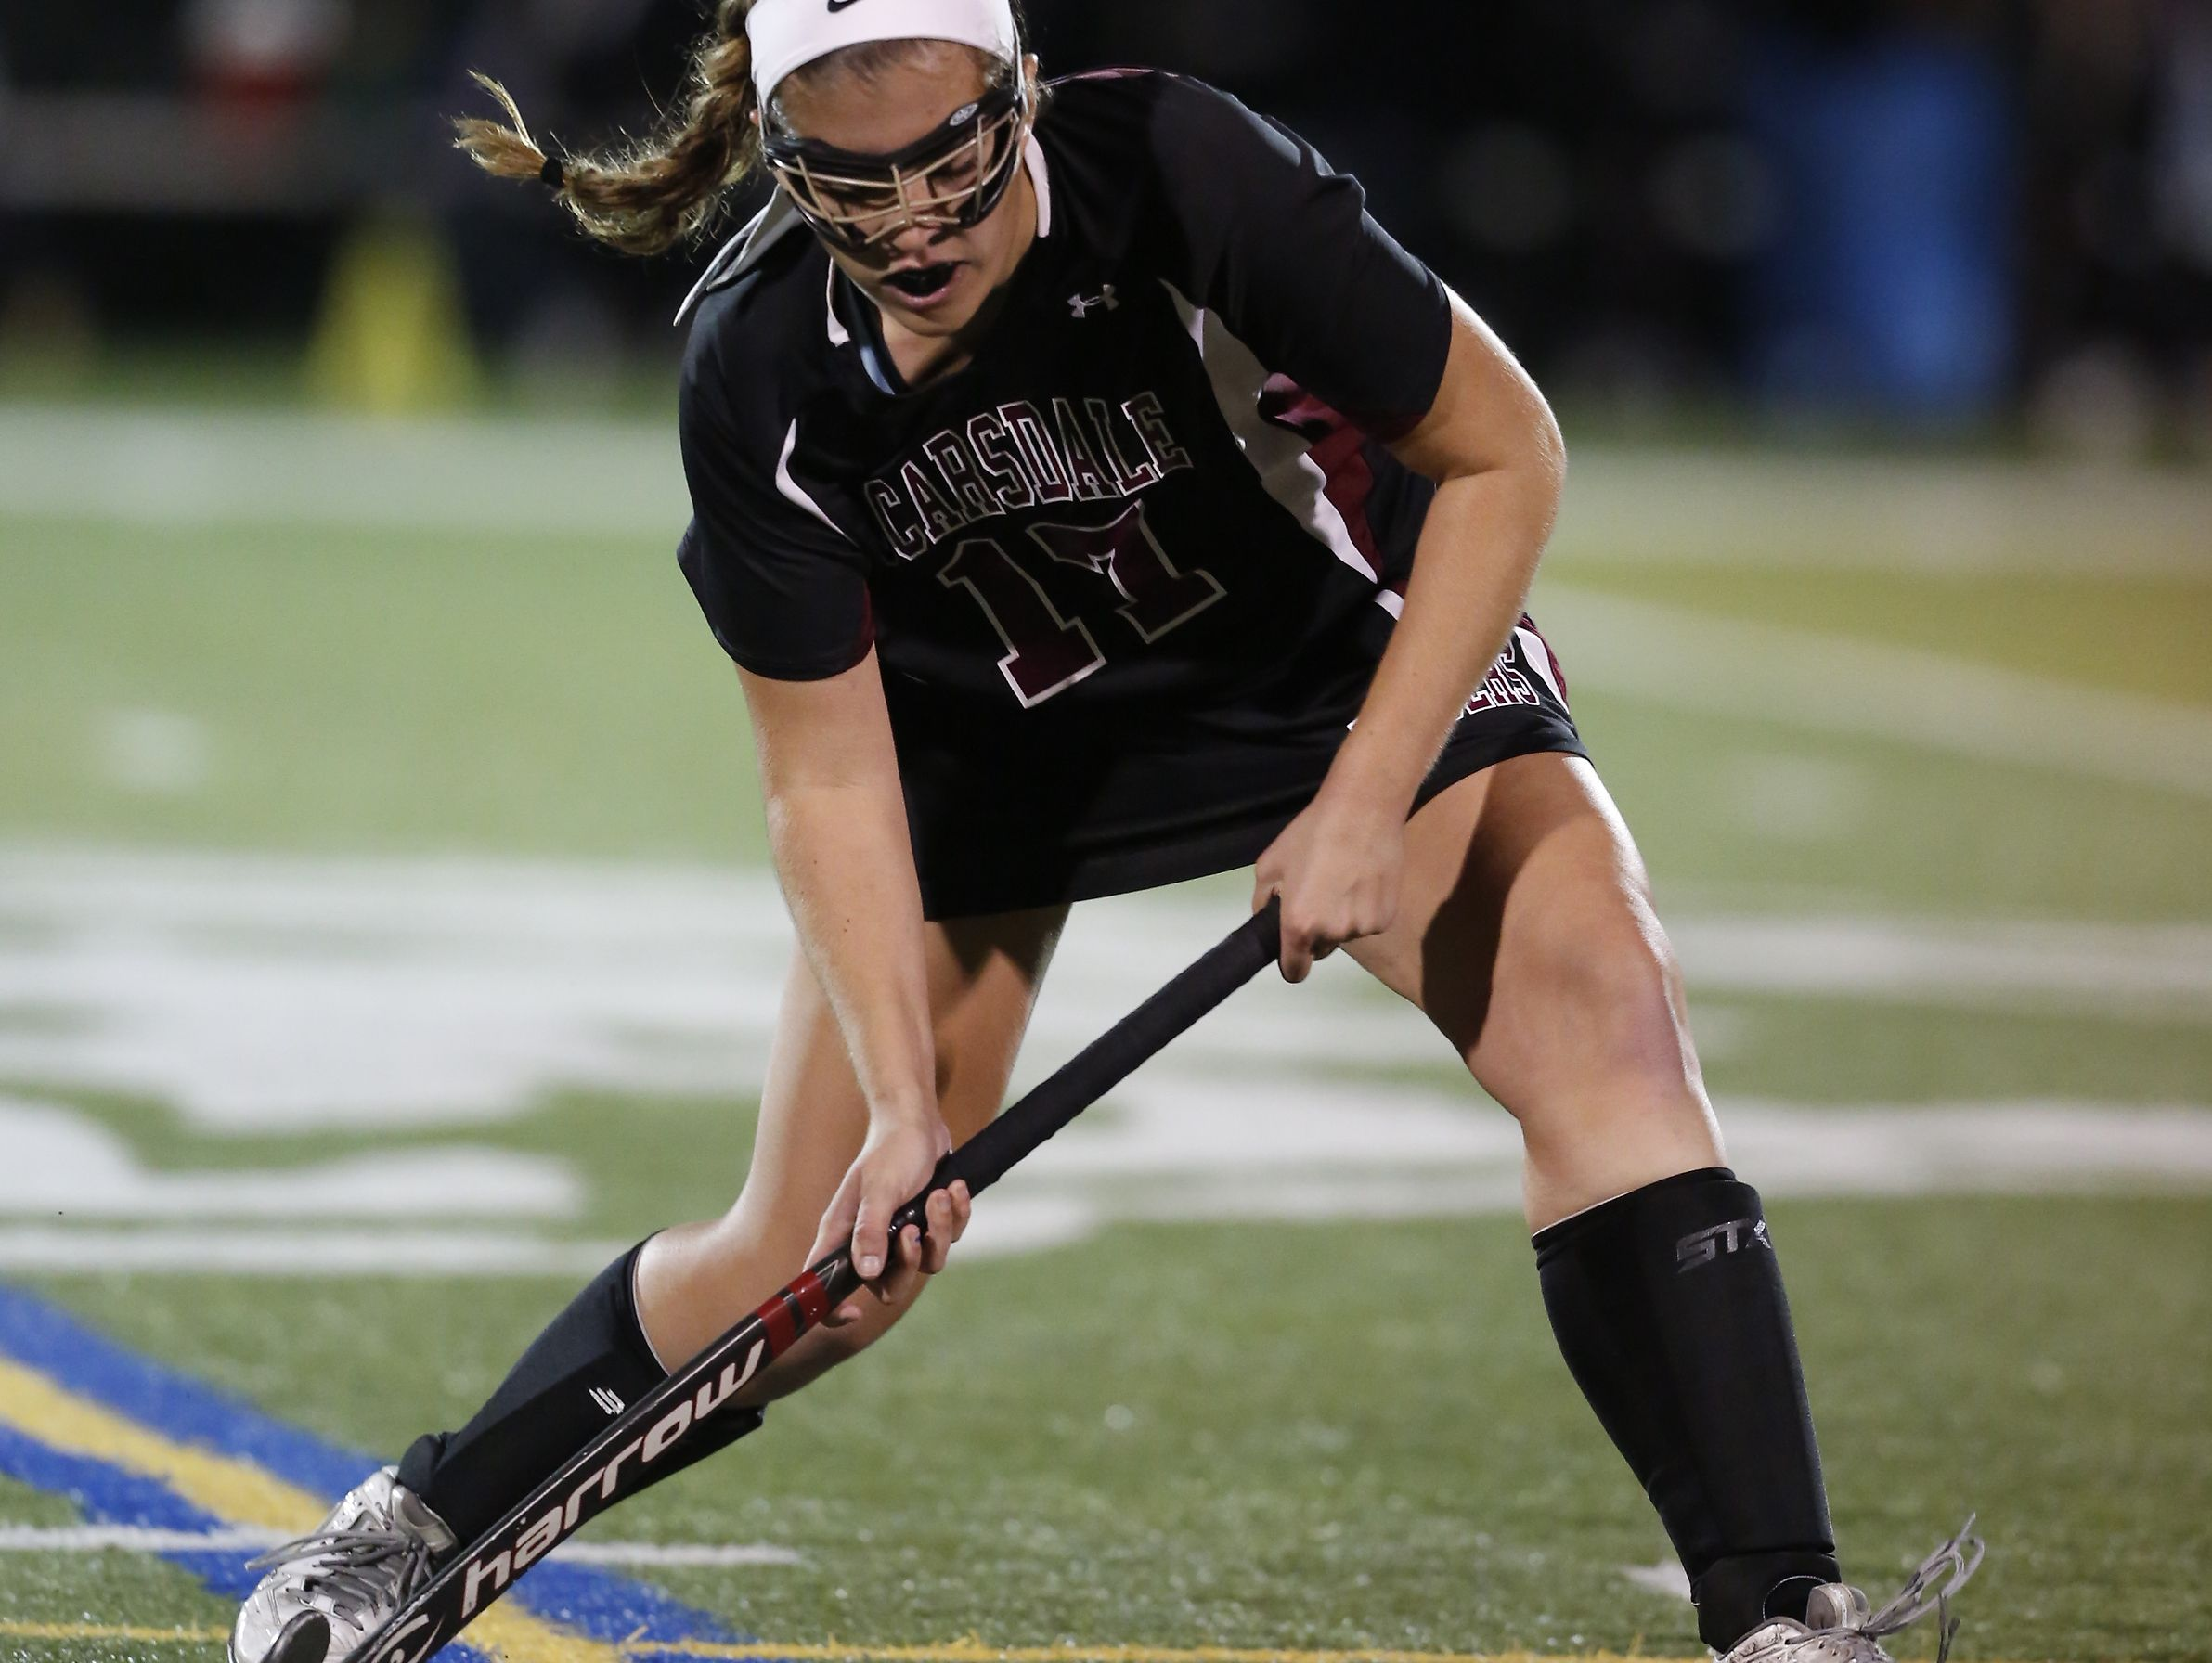 Scarsdale's Paide Danehy (17) feeds a pass in the Class A field hockey section finals against Mamaroneck at Brewster High School on Tuesday, November 1, 2016.